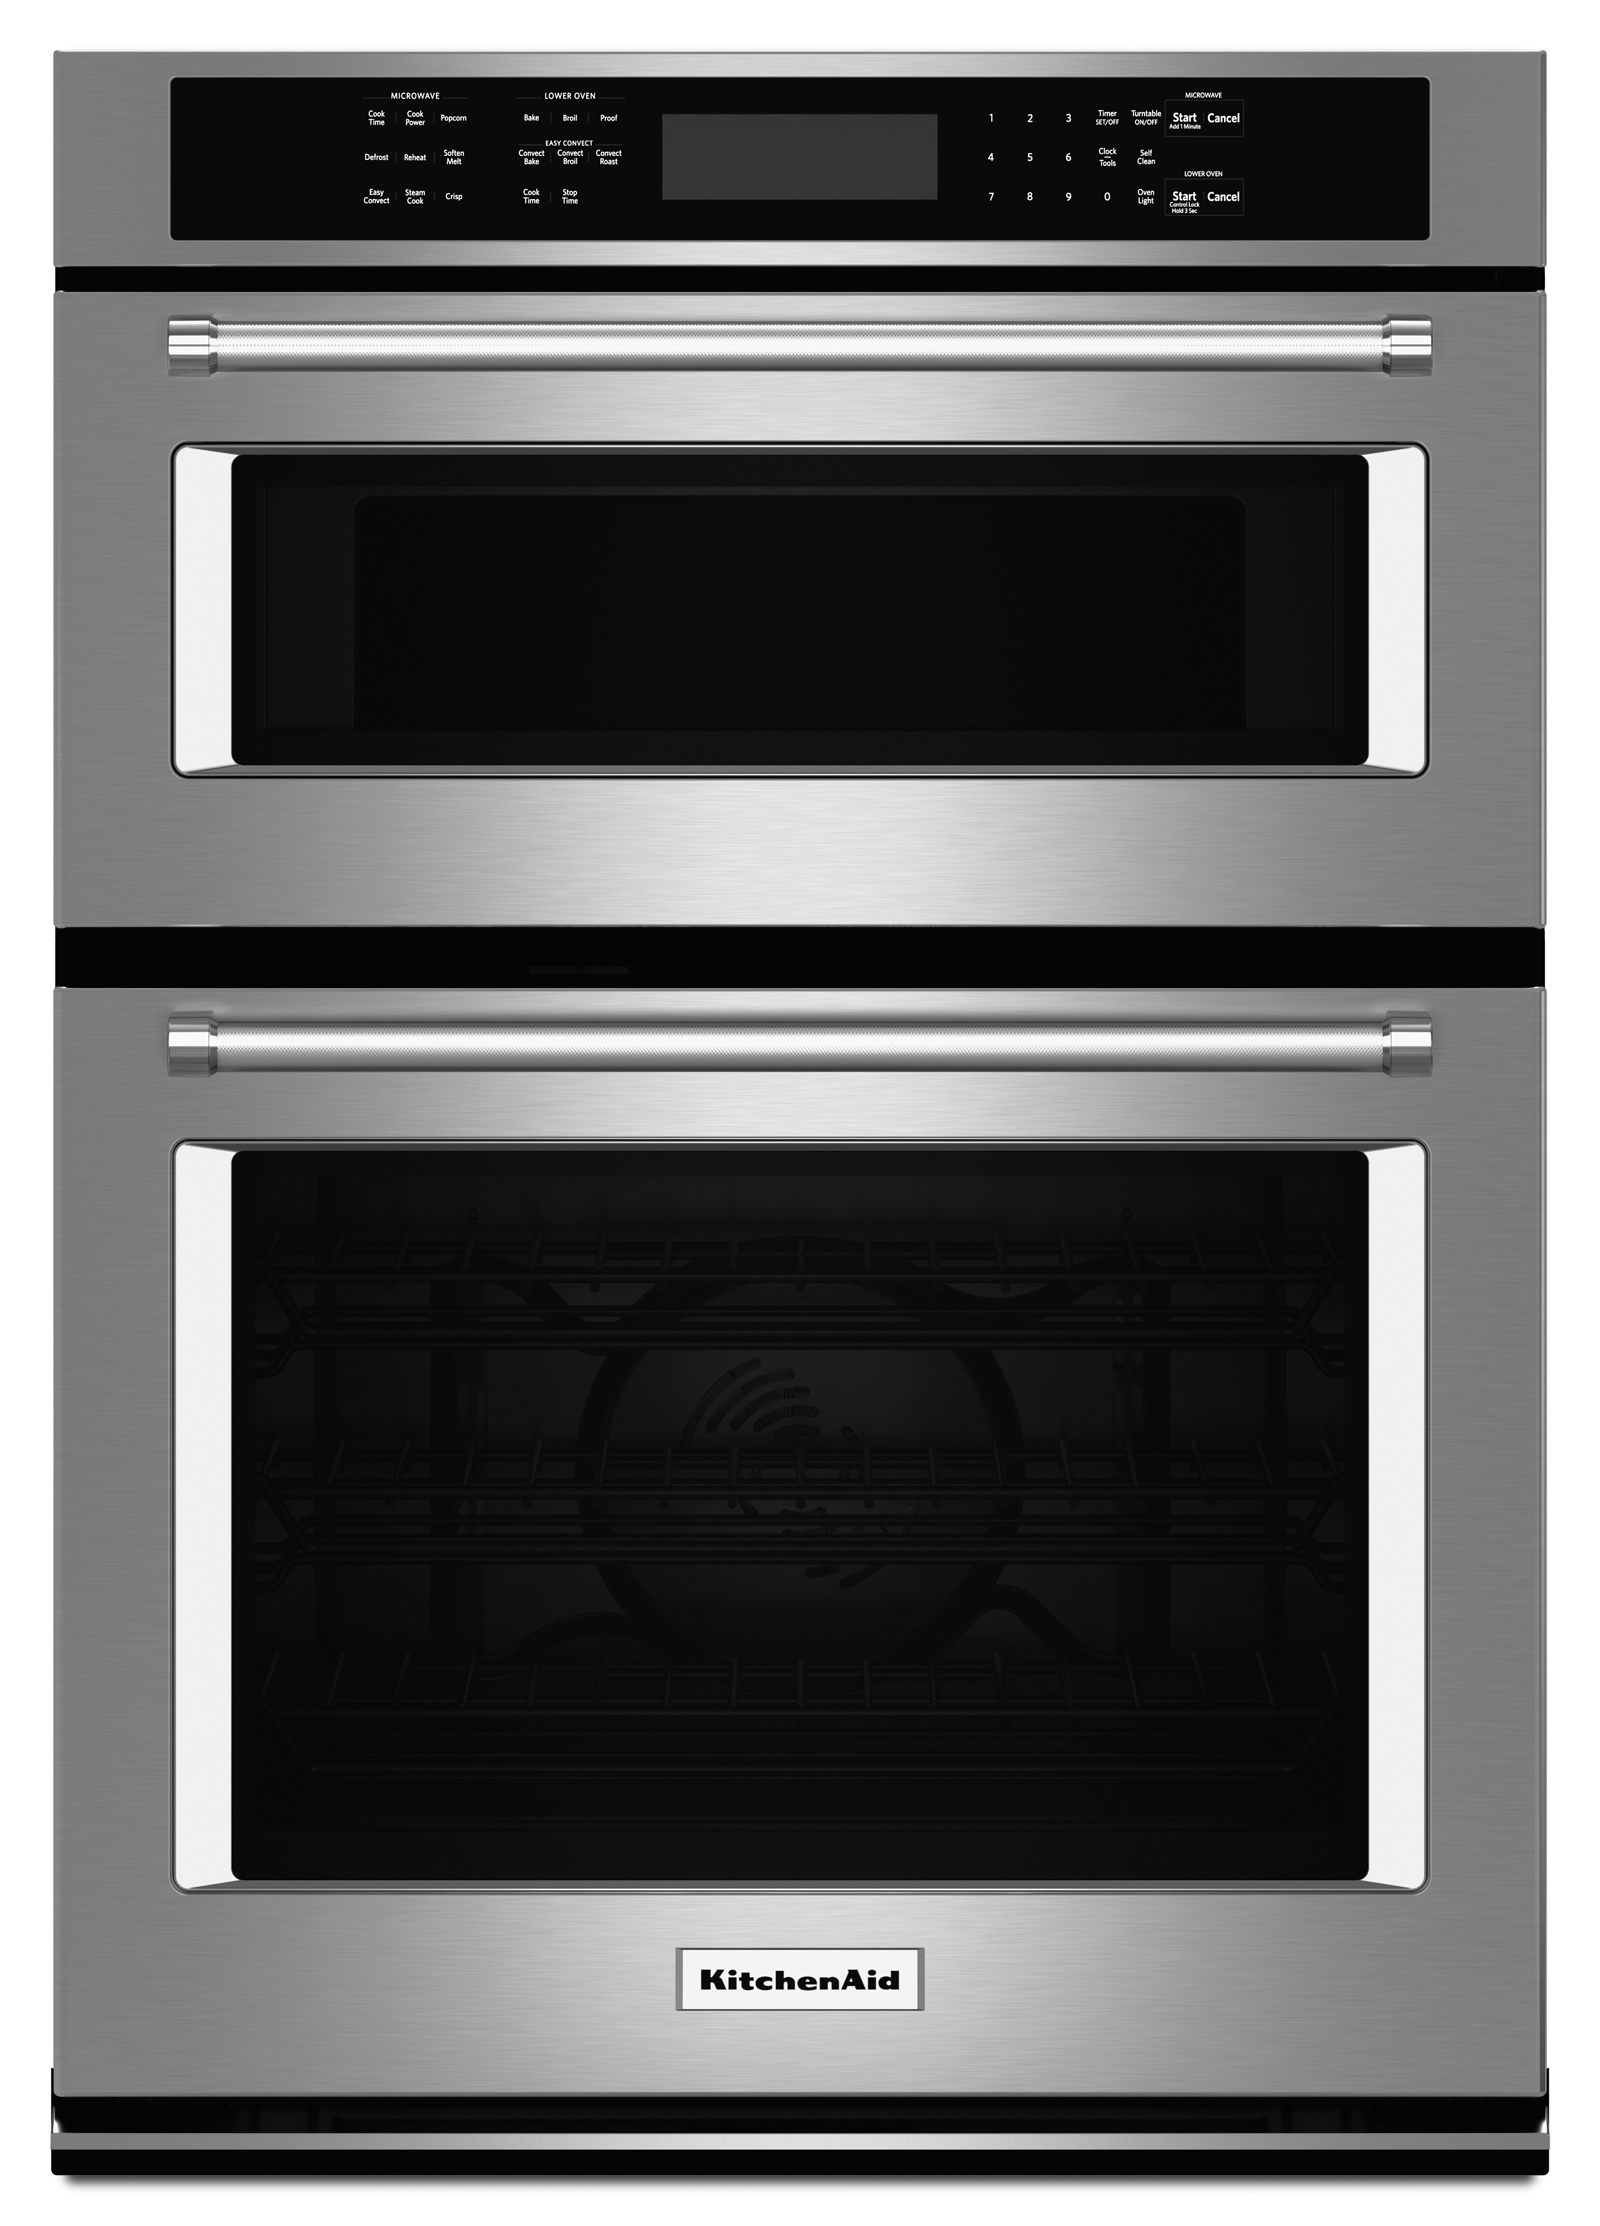 KOCE507ESS-27-Double-Wall-Oven-w-Even-Heat%E2%84%A2-True-Convection-Stainless-Steel